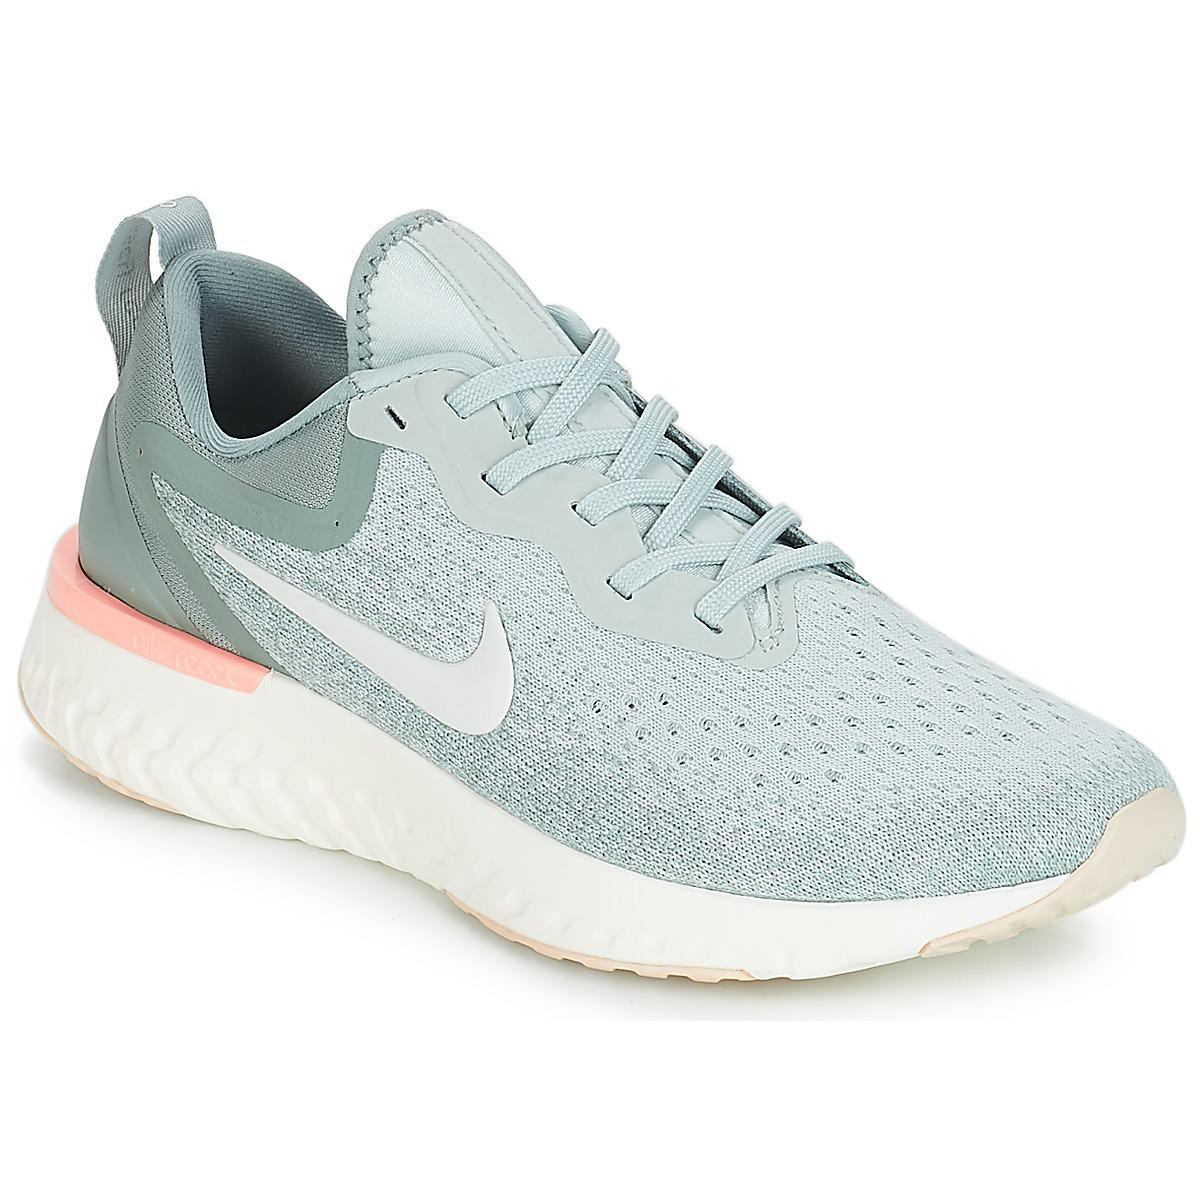 ece00f3daaa29 Nike Odyssey React Running Trainers in Gray - Lyst